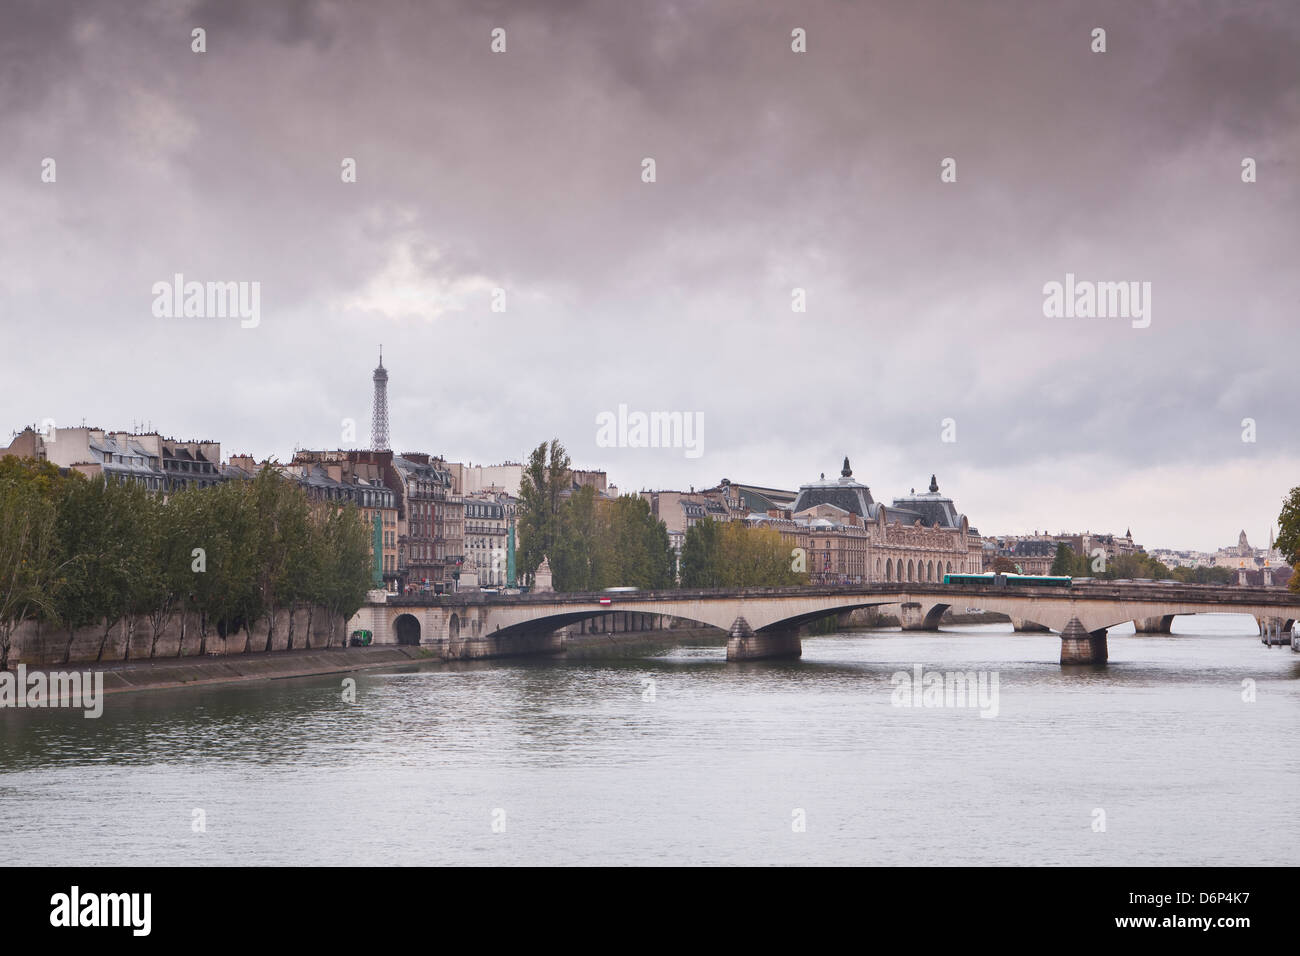 Looking down the River Seine in Paris on a rainy day, Paris, France, Europe - Stock Image